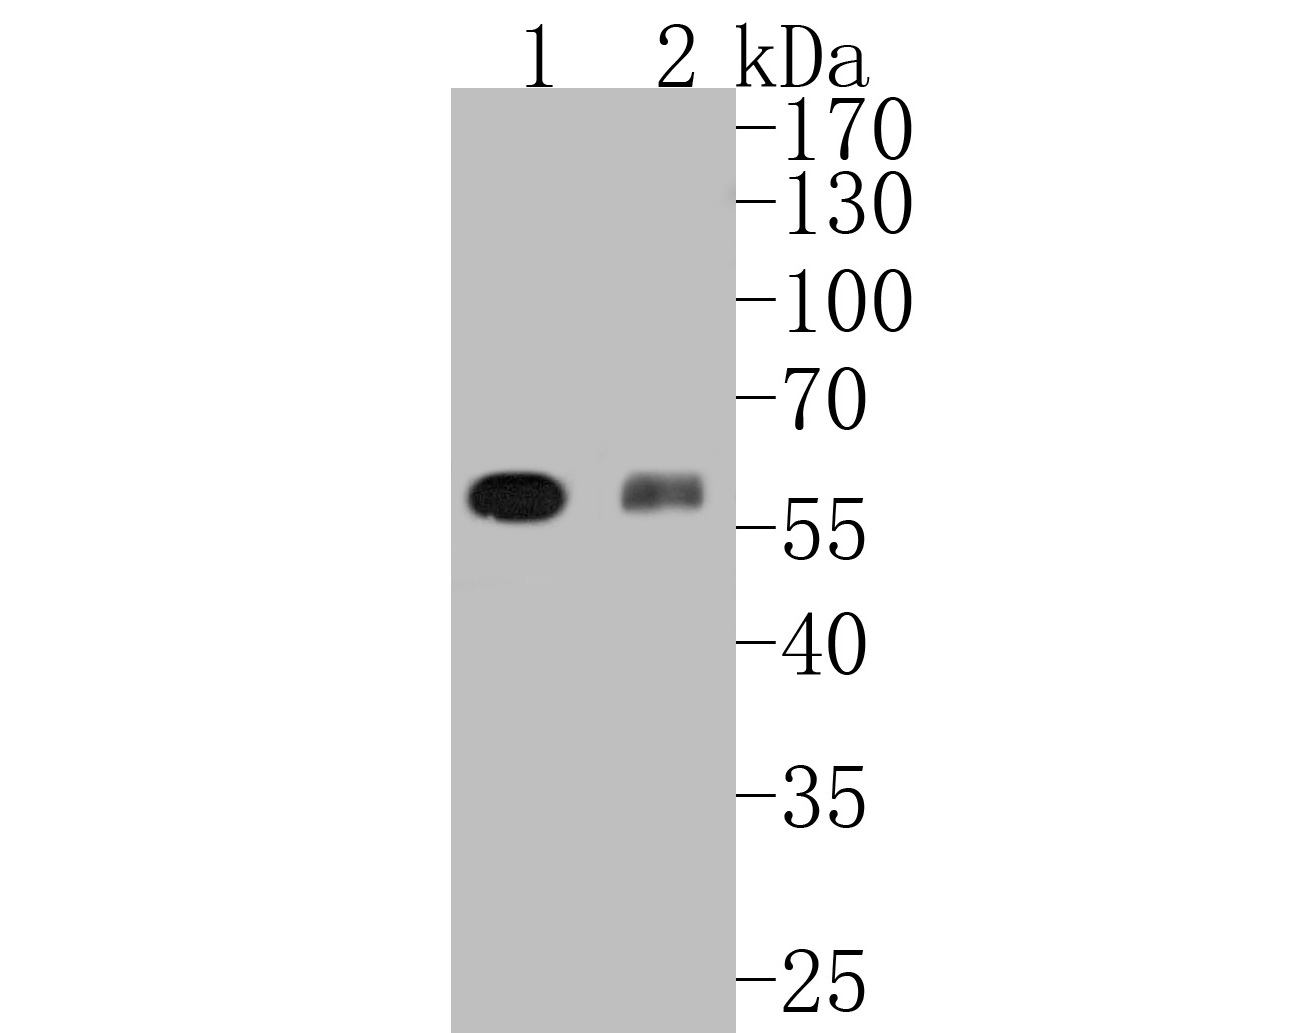 Western blot analysis of RUNX2 on different lysates. Proteins were transferred to a PVDF membrane and blocked with 5% BSA in PBS for 1 hour at room temperature. The primary antibody (ET1612-47, 1/500) was used in 5% BSA at room temperature for 2 hours. Goat Anti-Rabbit IgG - HRP Secondary Antibody (HA1001) at 1:5,000 dilution was used for 1 hour at room temperature.<br /> Positive control: <br /> Lane 1: mouse spleen tissue lysate<br /> Lane 2: U937 cell lysate<br /> Lane 3: HL-60 cell lysate